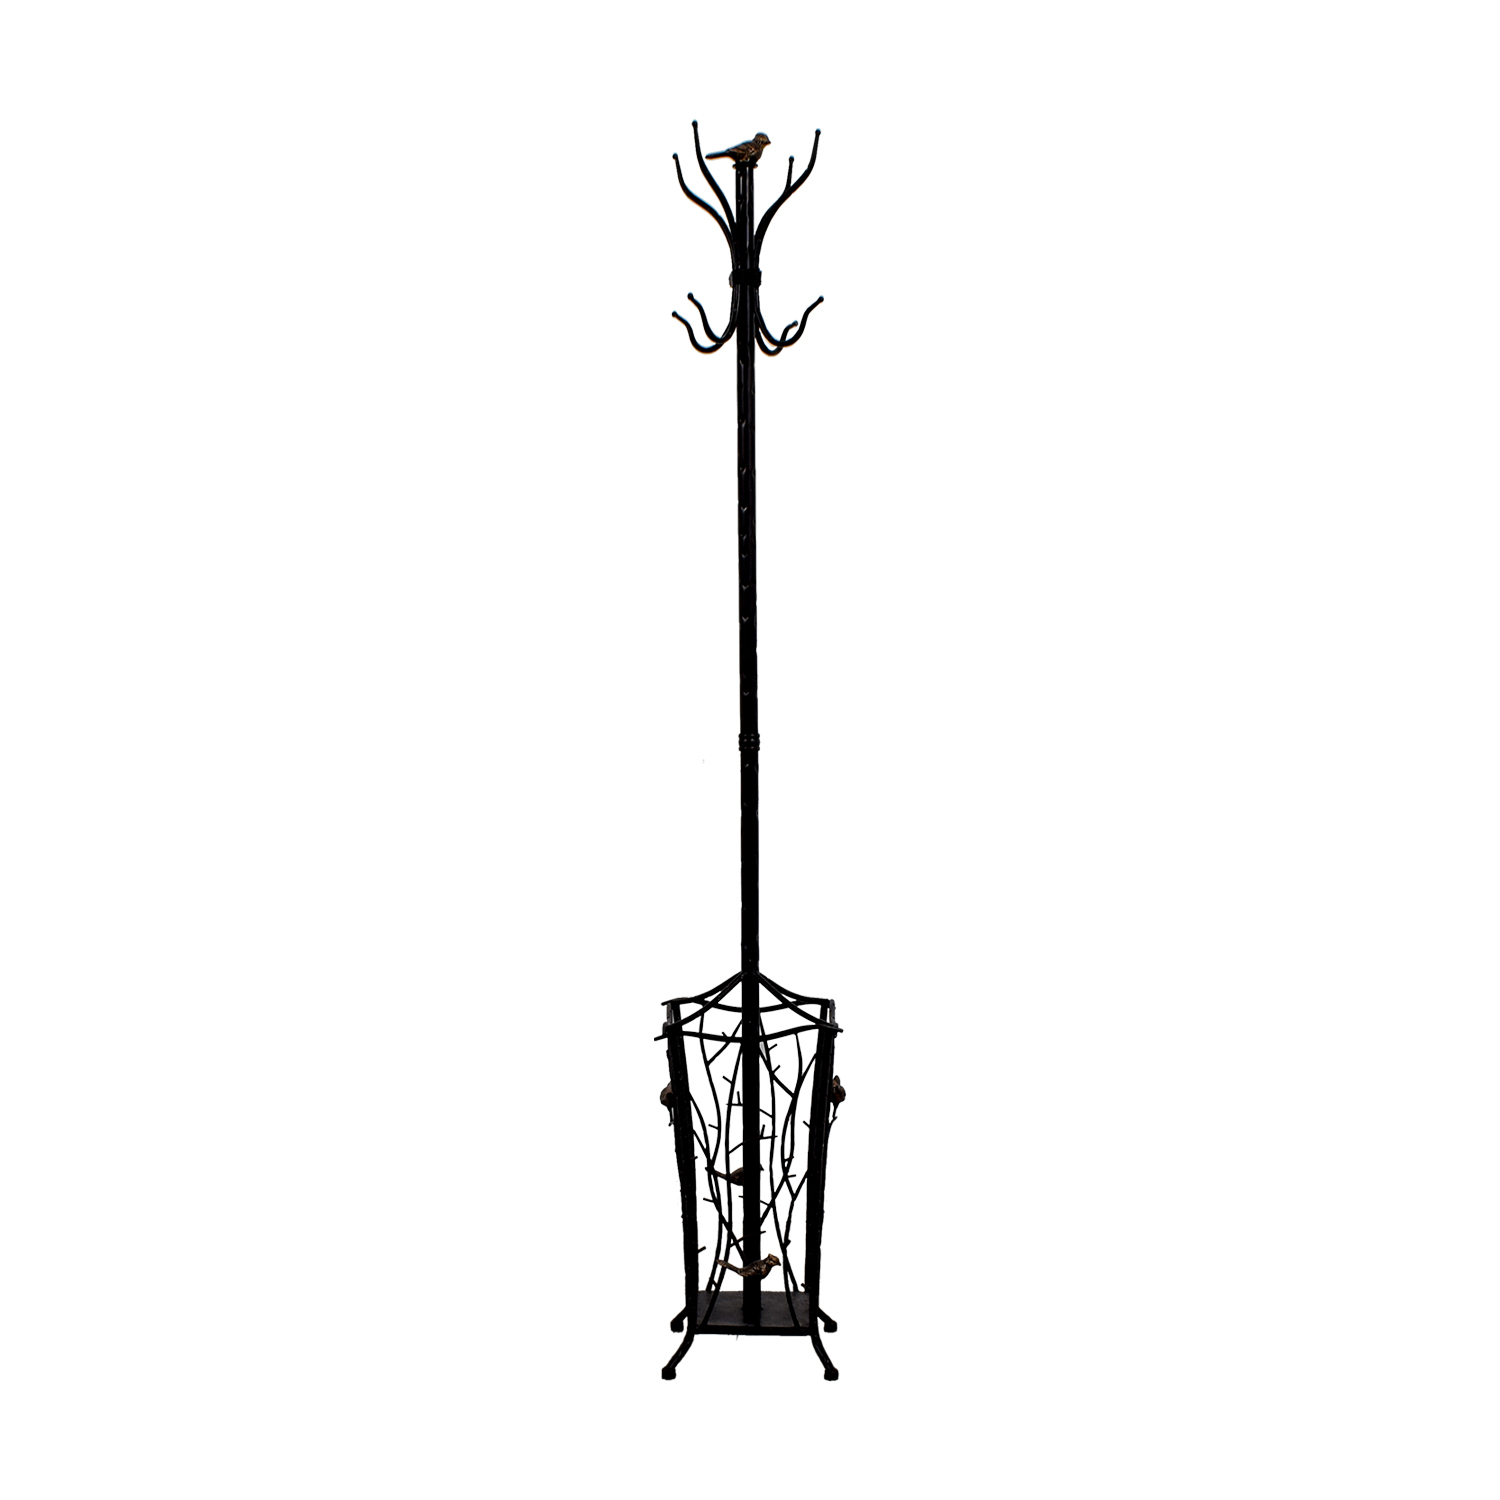 Pier 1 Imports Pier 1 Imports Bird Accent Coat Rack Black